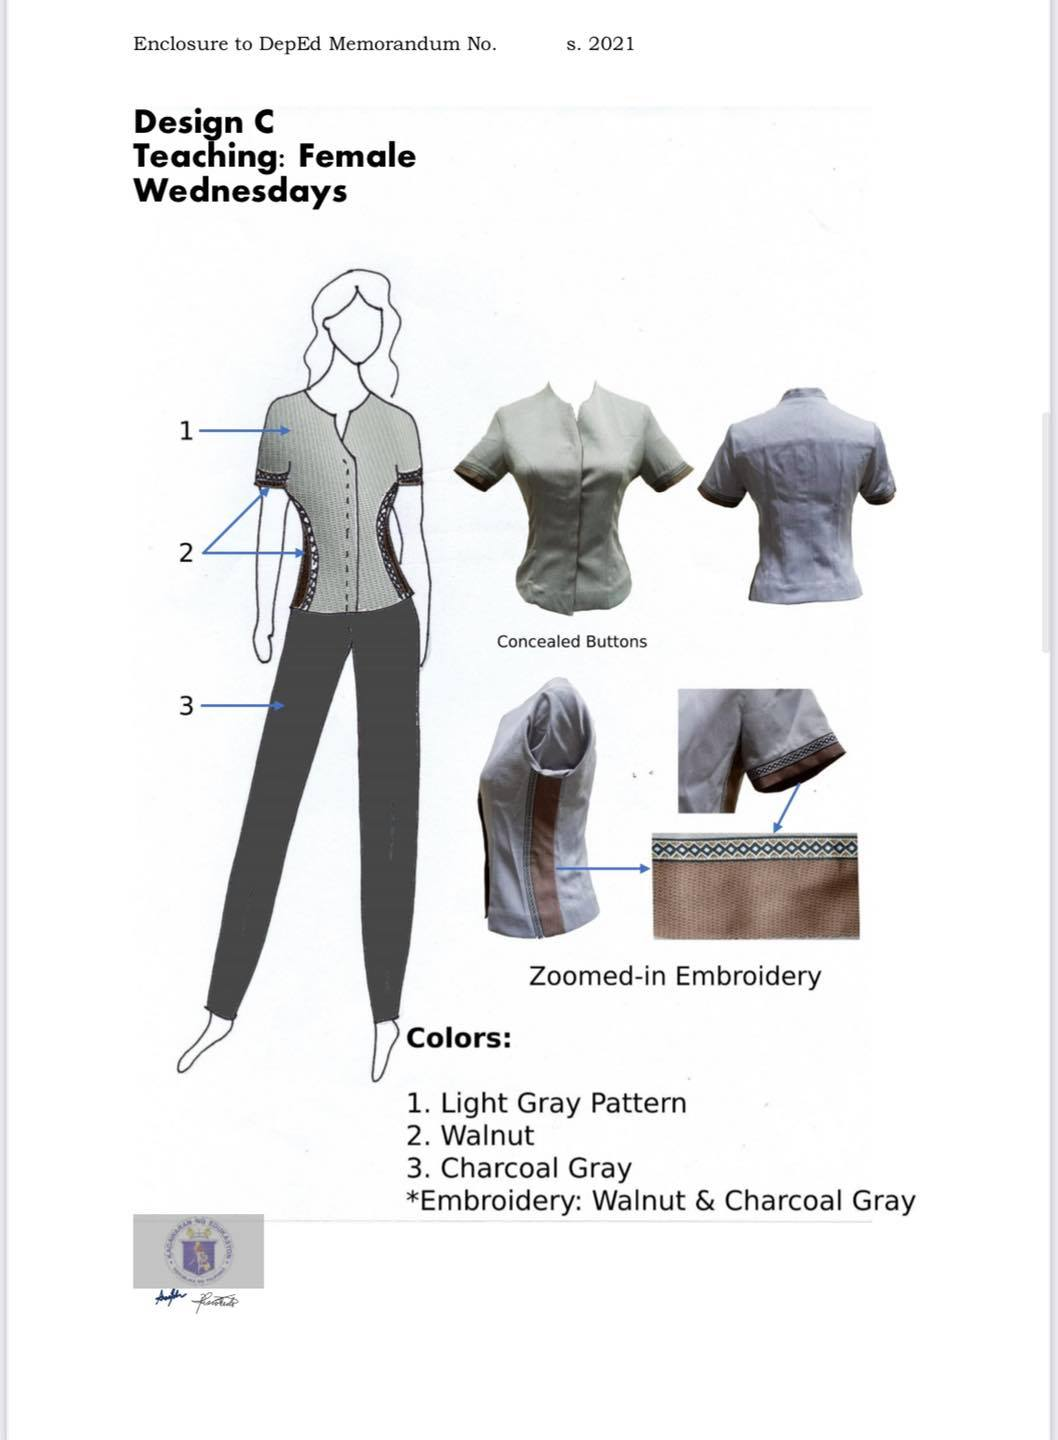 DepEd National Uniform Design C for Female Teaching Personnel (Wednesdays)